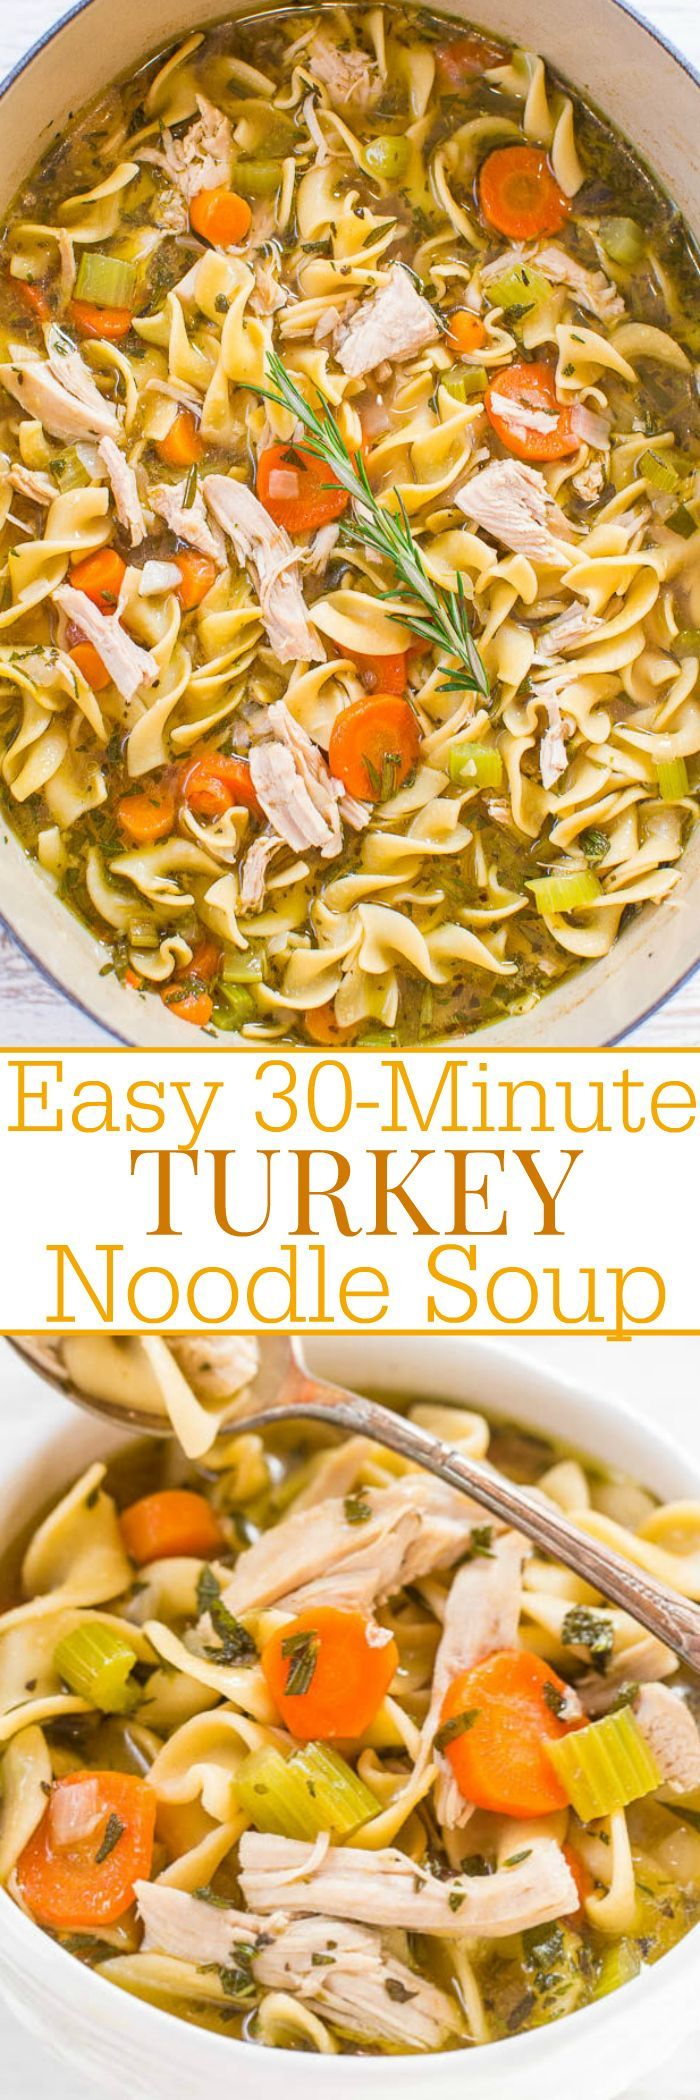 Easy 30-Minute Turkey Noodle Soup - Have leftover Thanksgiving turkey? MAKE THIS!! It's fast, easy, hearty, loaded with flavor, and tastes like grandma's homemade chicken noodle soup, but with turkey!!